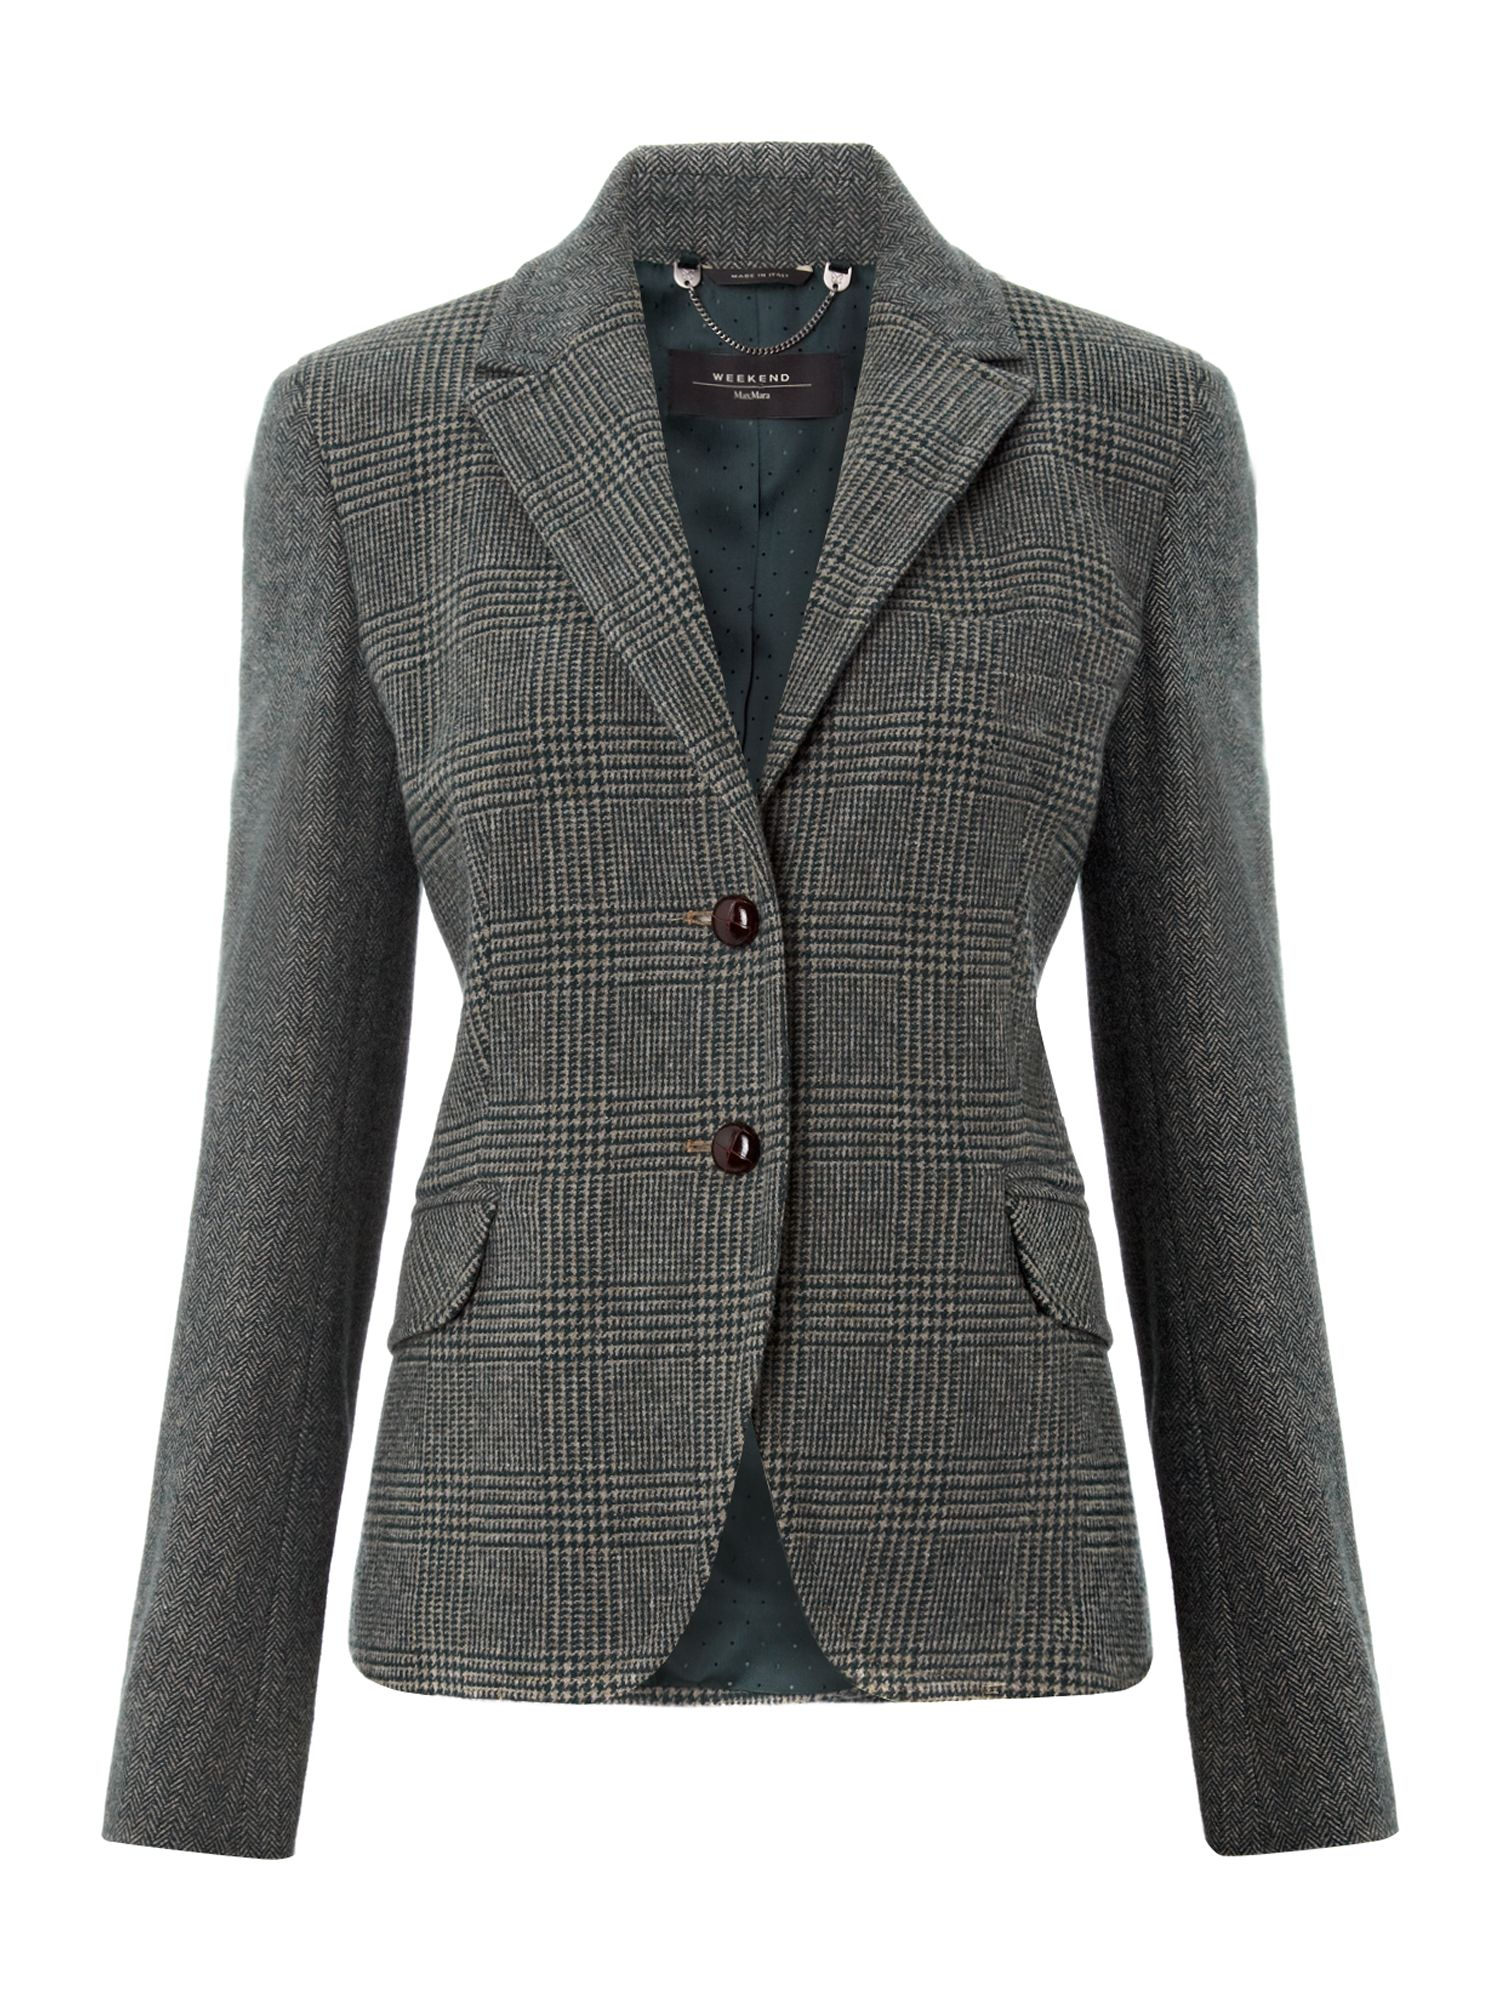 Utopico tweed jacket